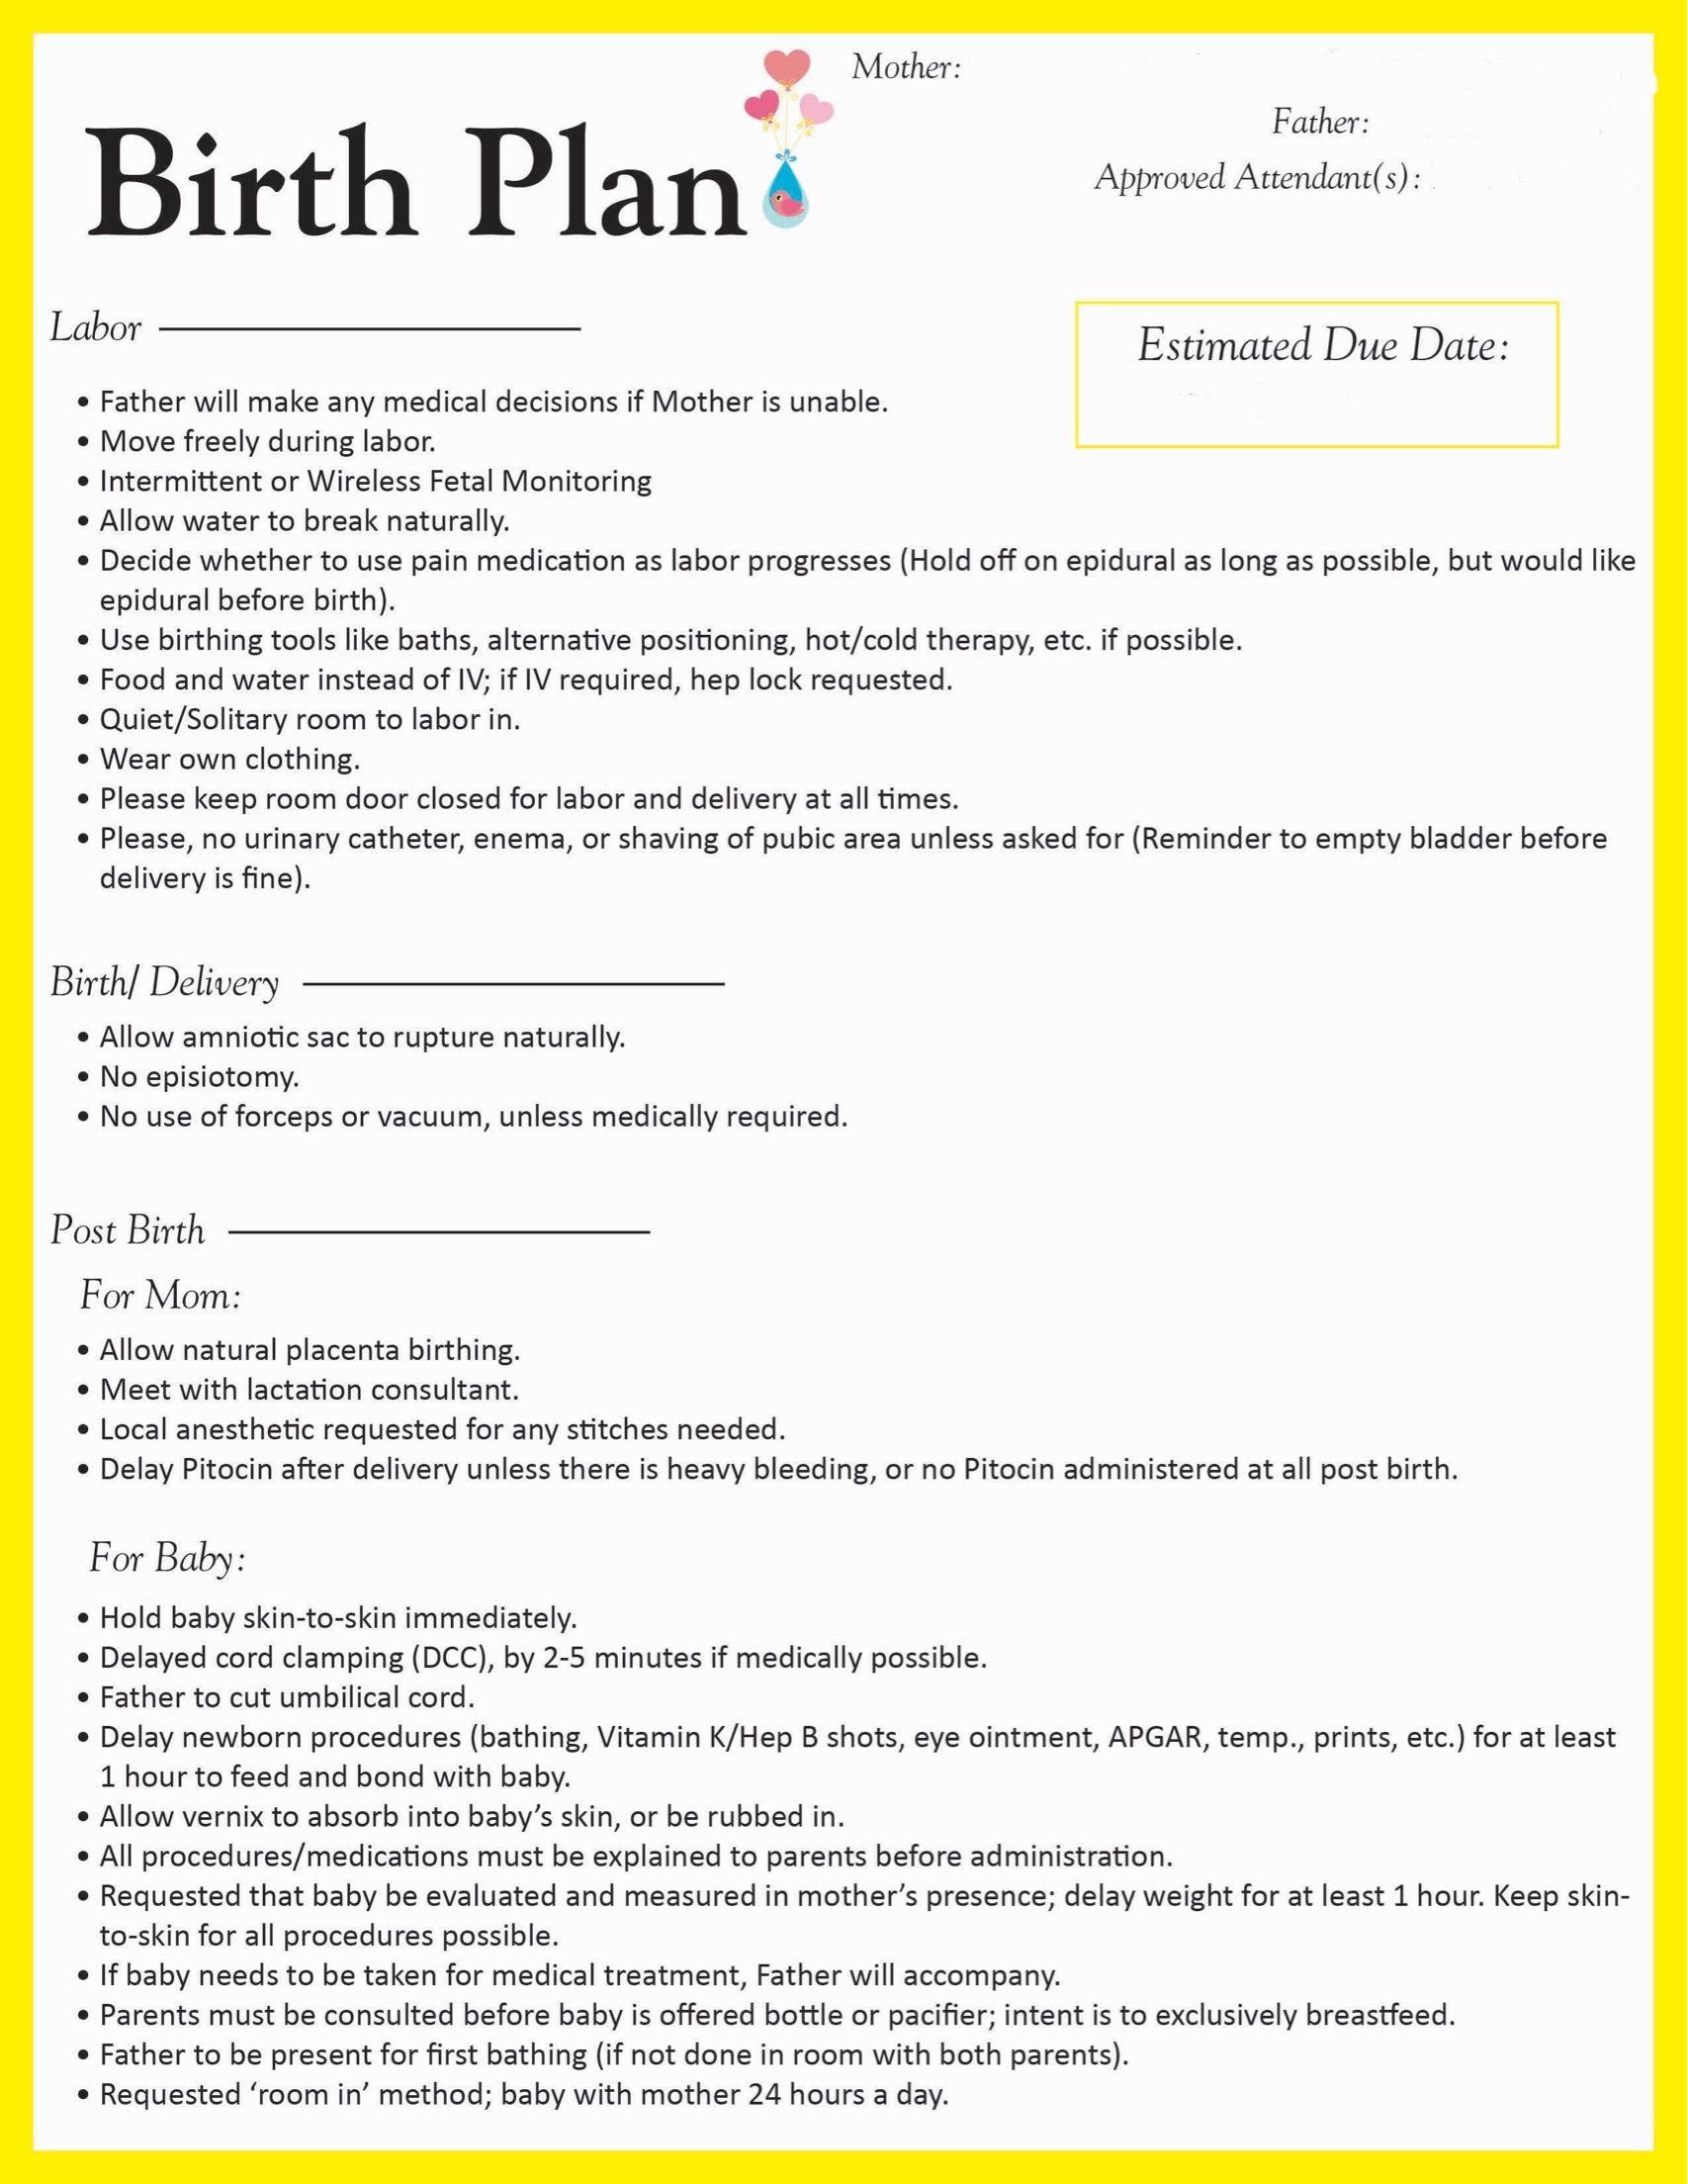 Birth Plan- Going To Make Some Edits, But This Is A Good General | Birth Plan Worksheet Printable